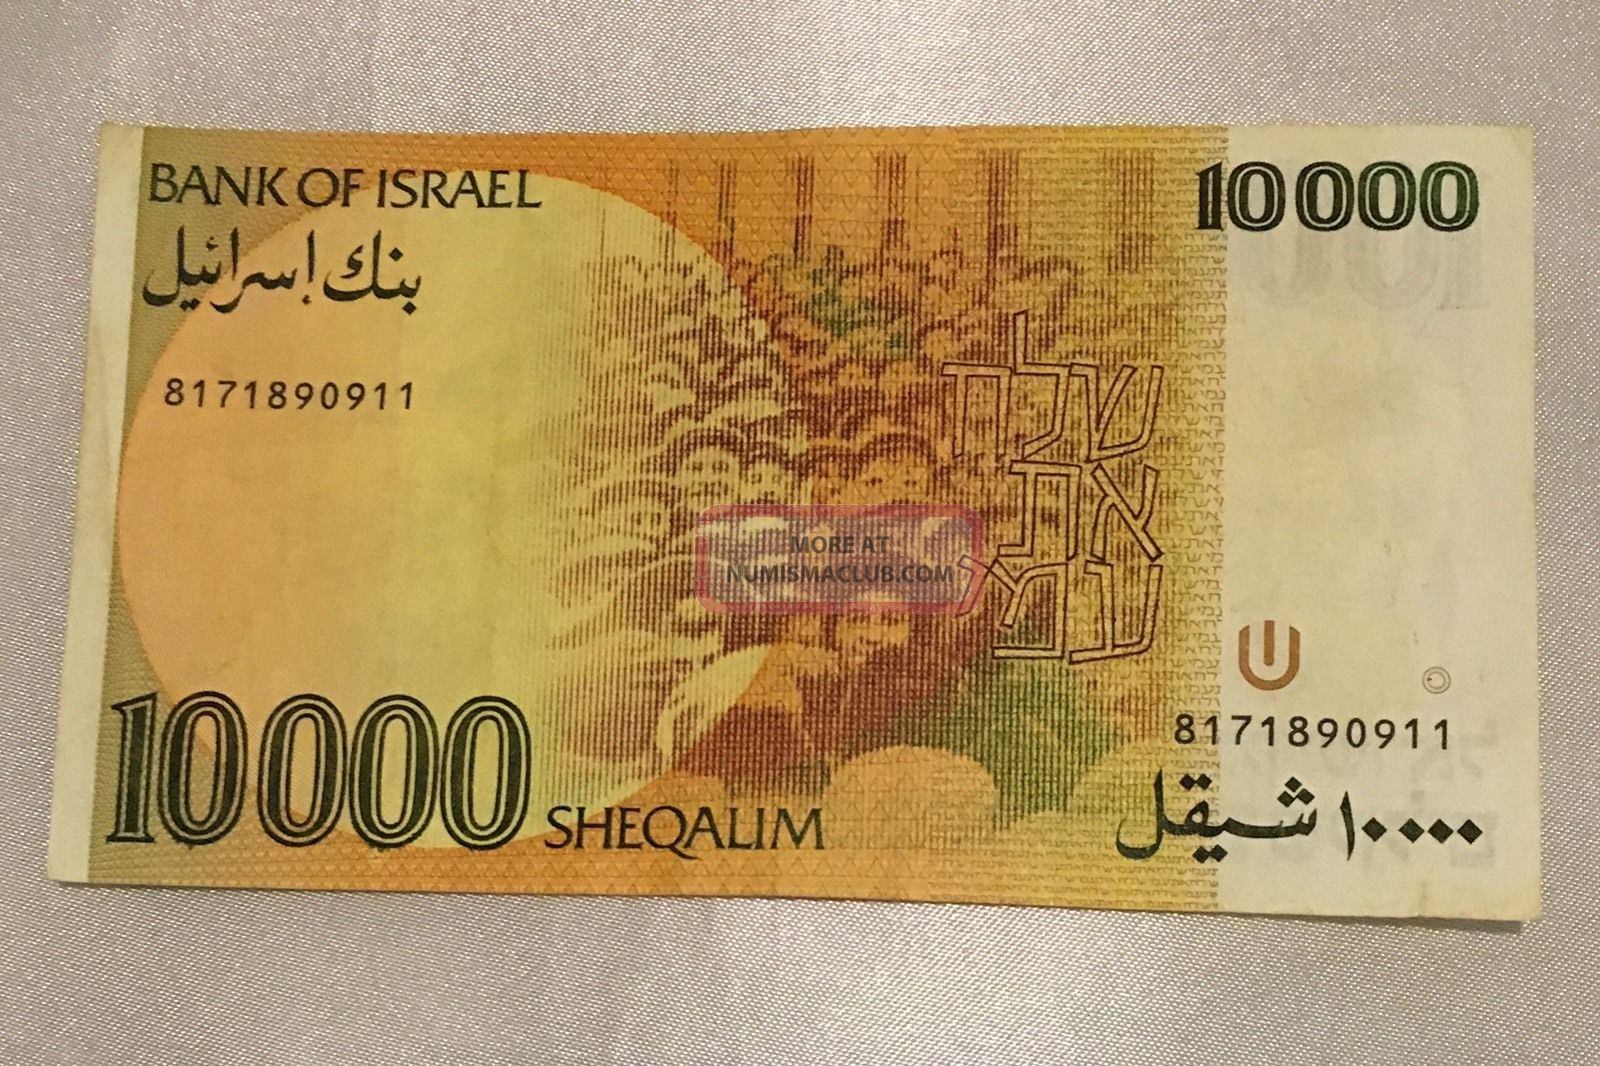 10000 Israeli Shekels 1984 Unc Banknote Pm Golda Meir Rare Middle East photo